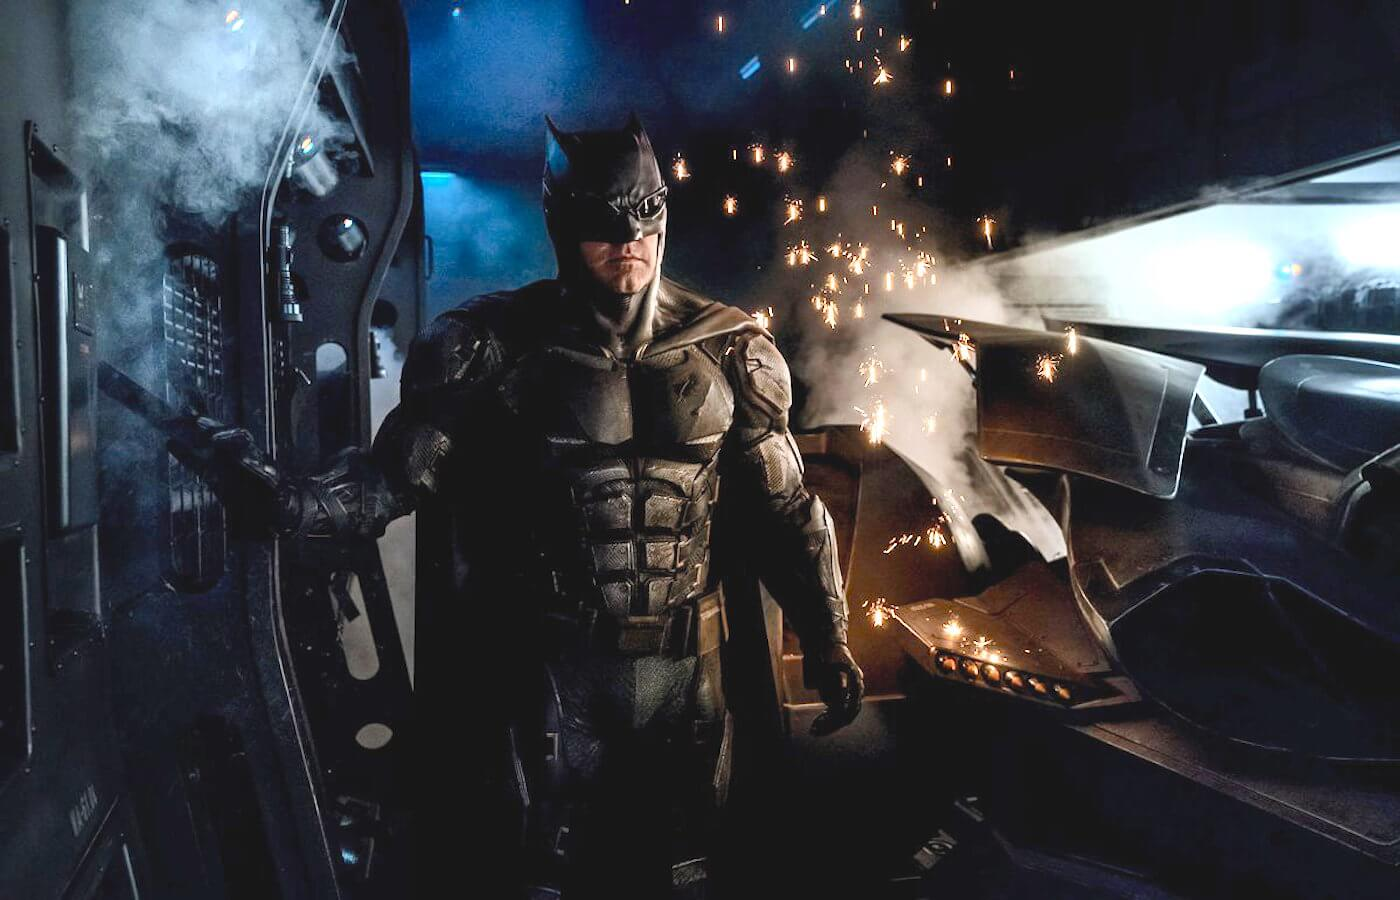 justice-league-batman-batsuit.jpg